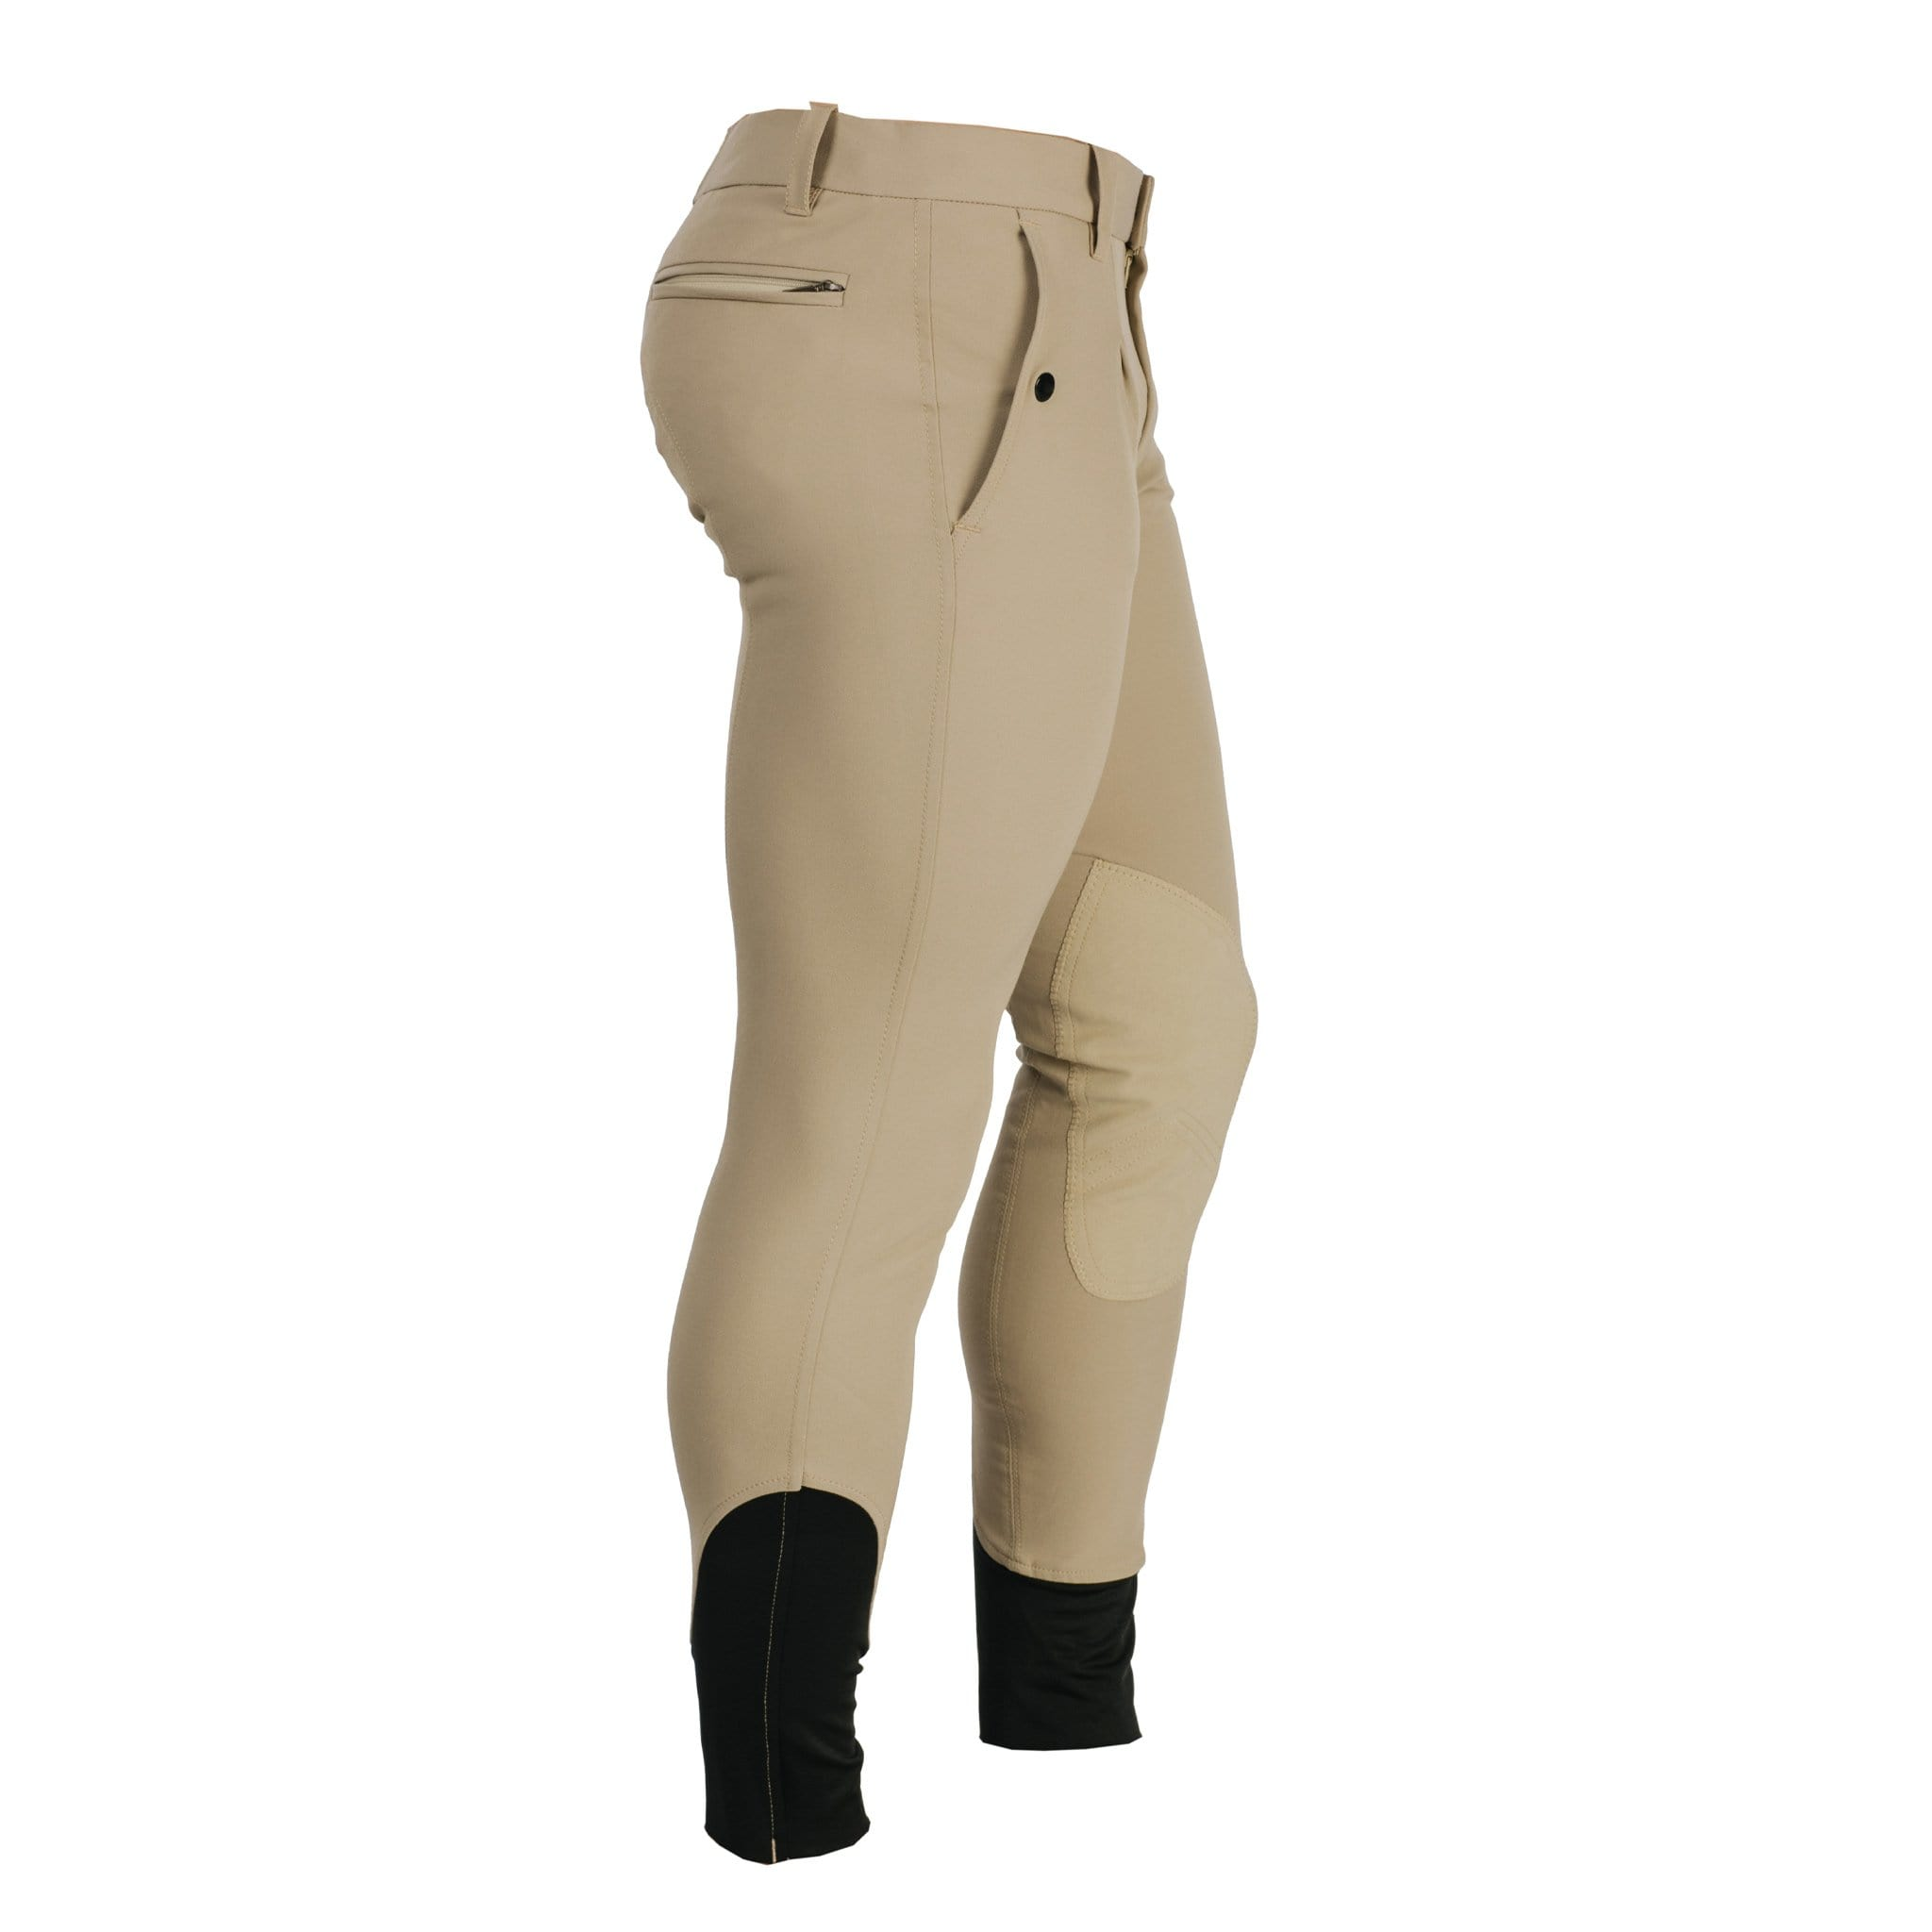 CLHMDL Horseware Men's Woven Alos Knee Patch Breeches Beige